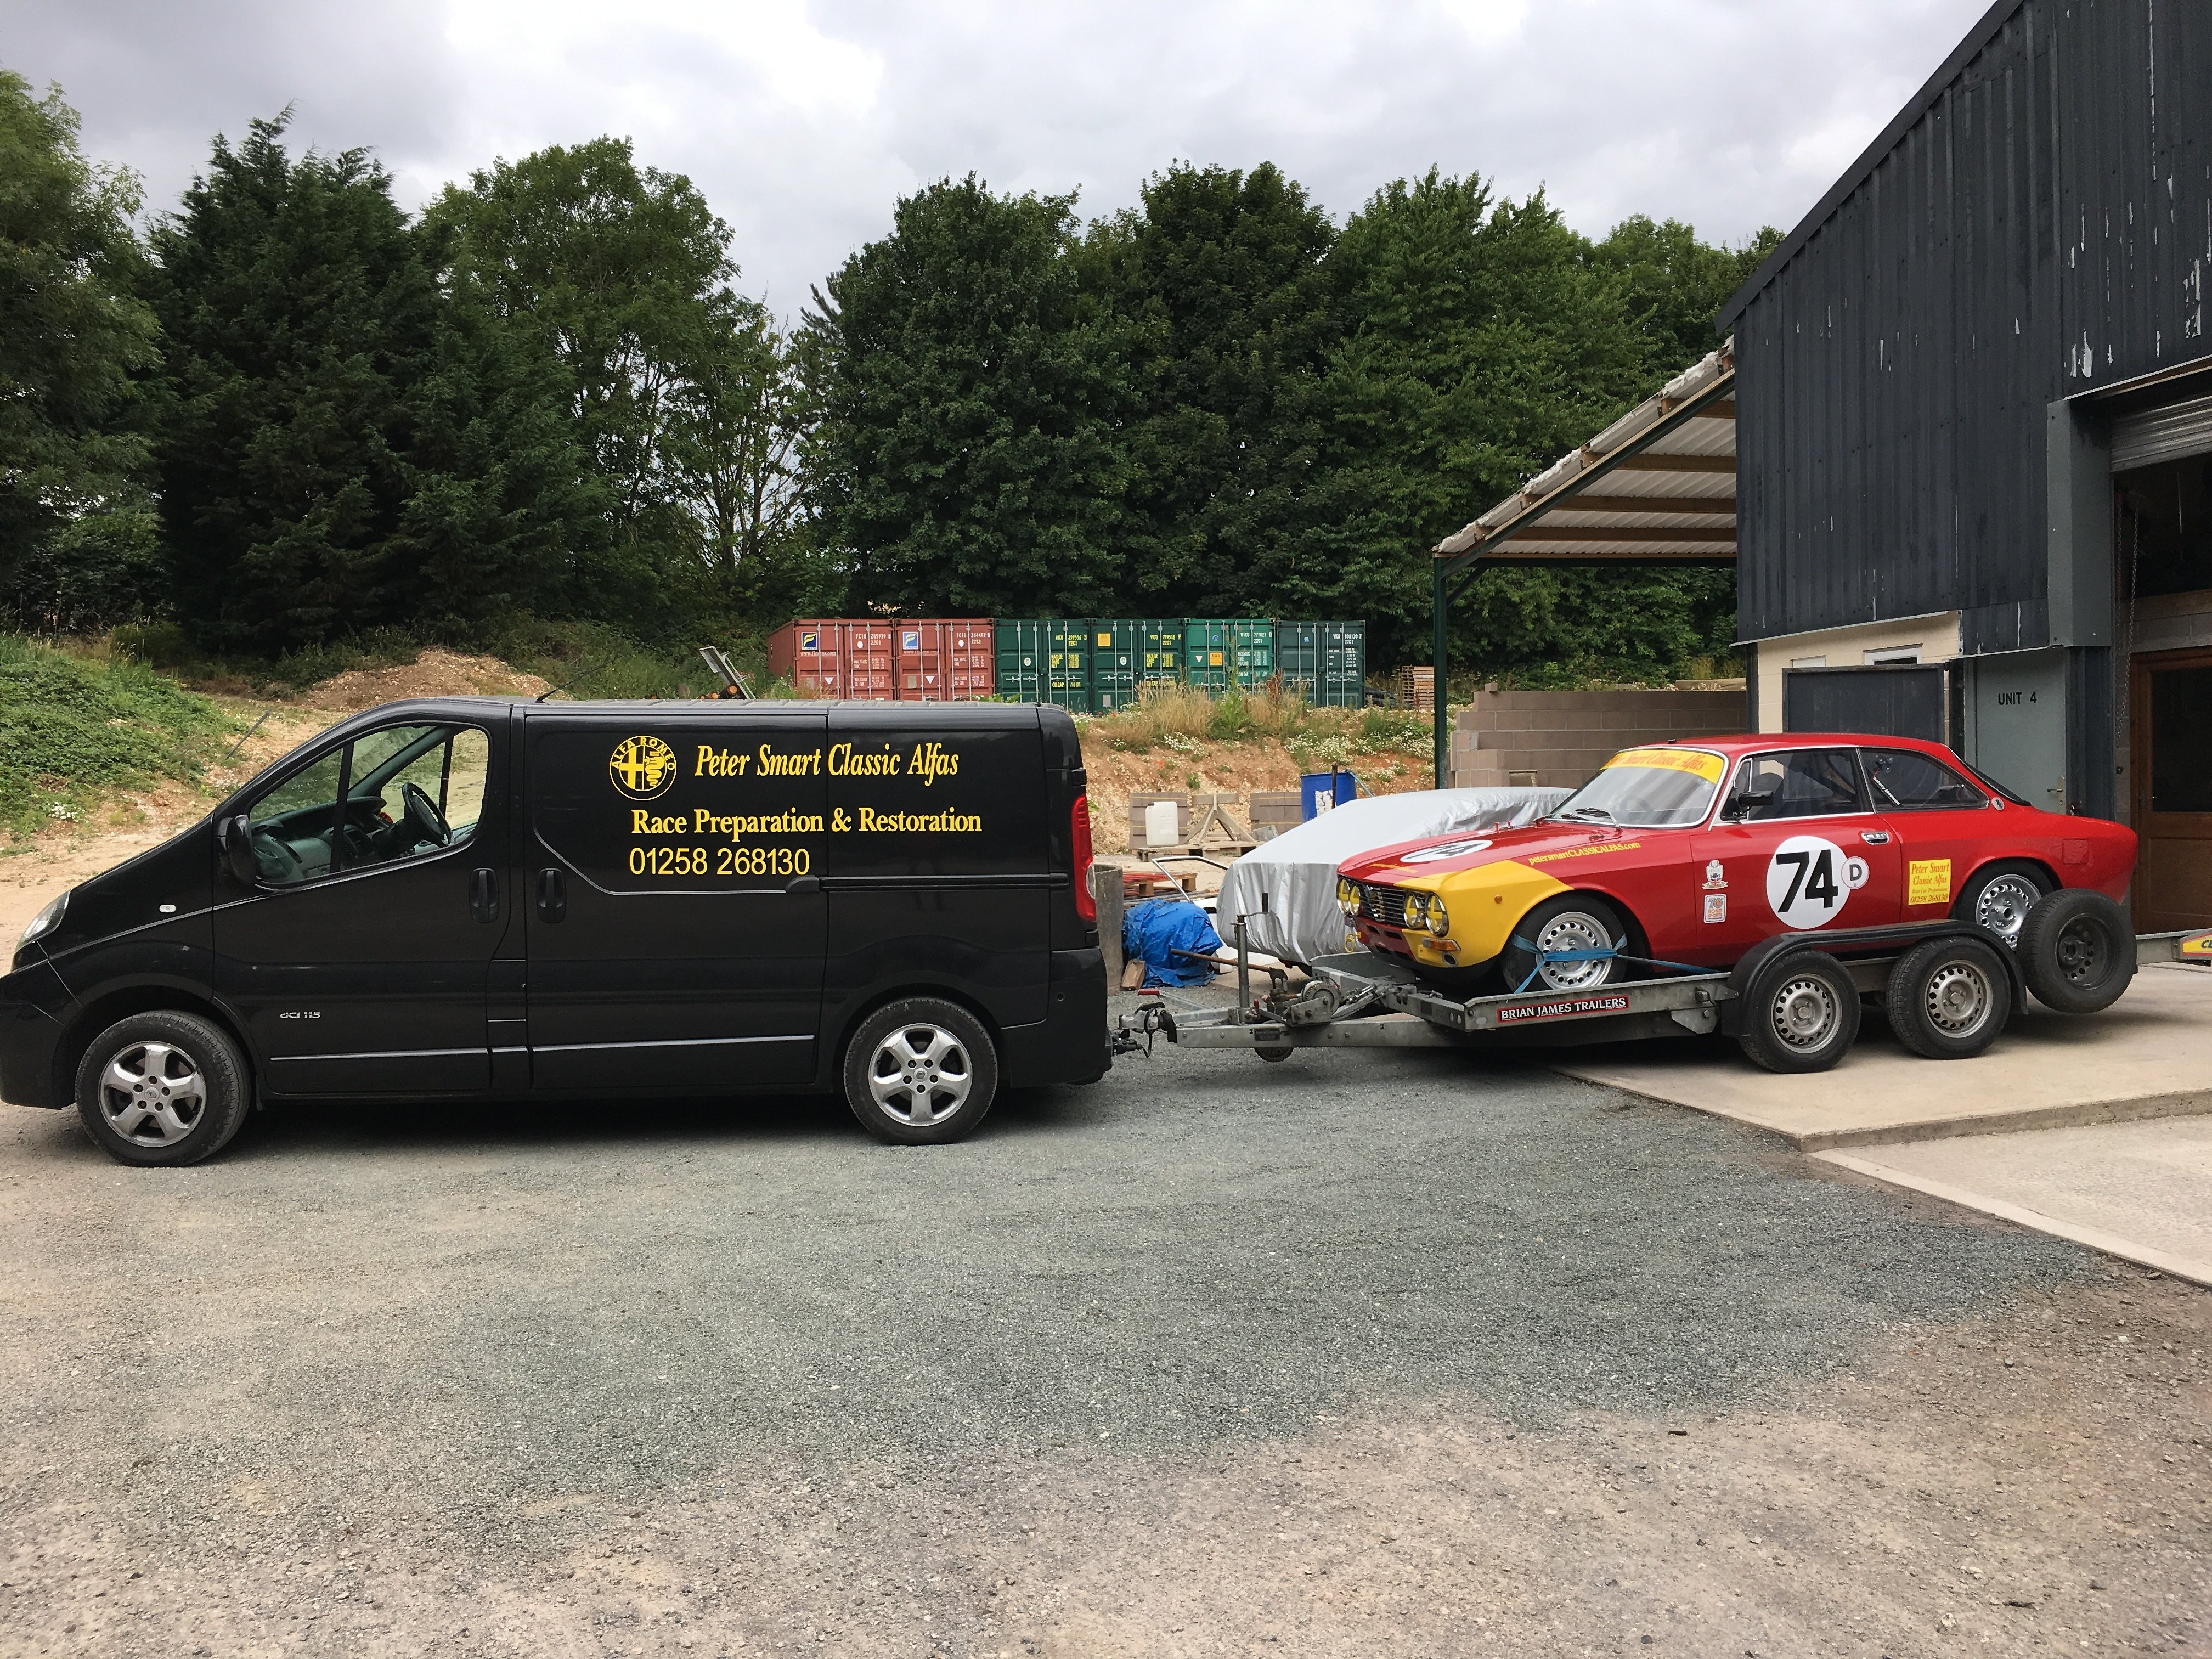 Race/Rally Preparation and Race Support. Race vehicle transportation